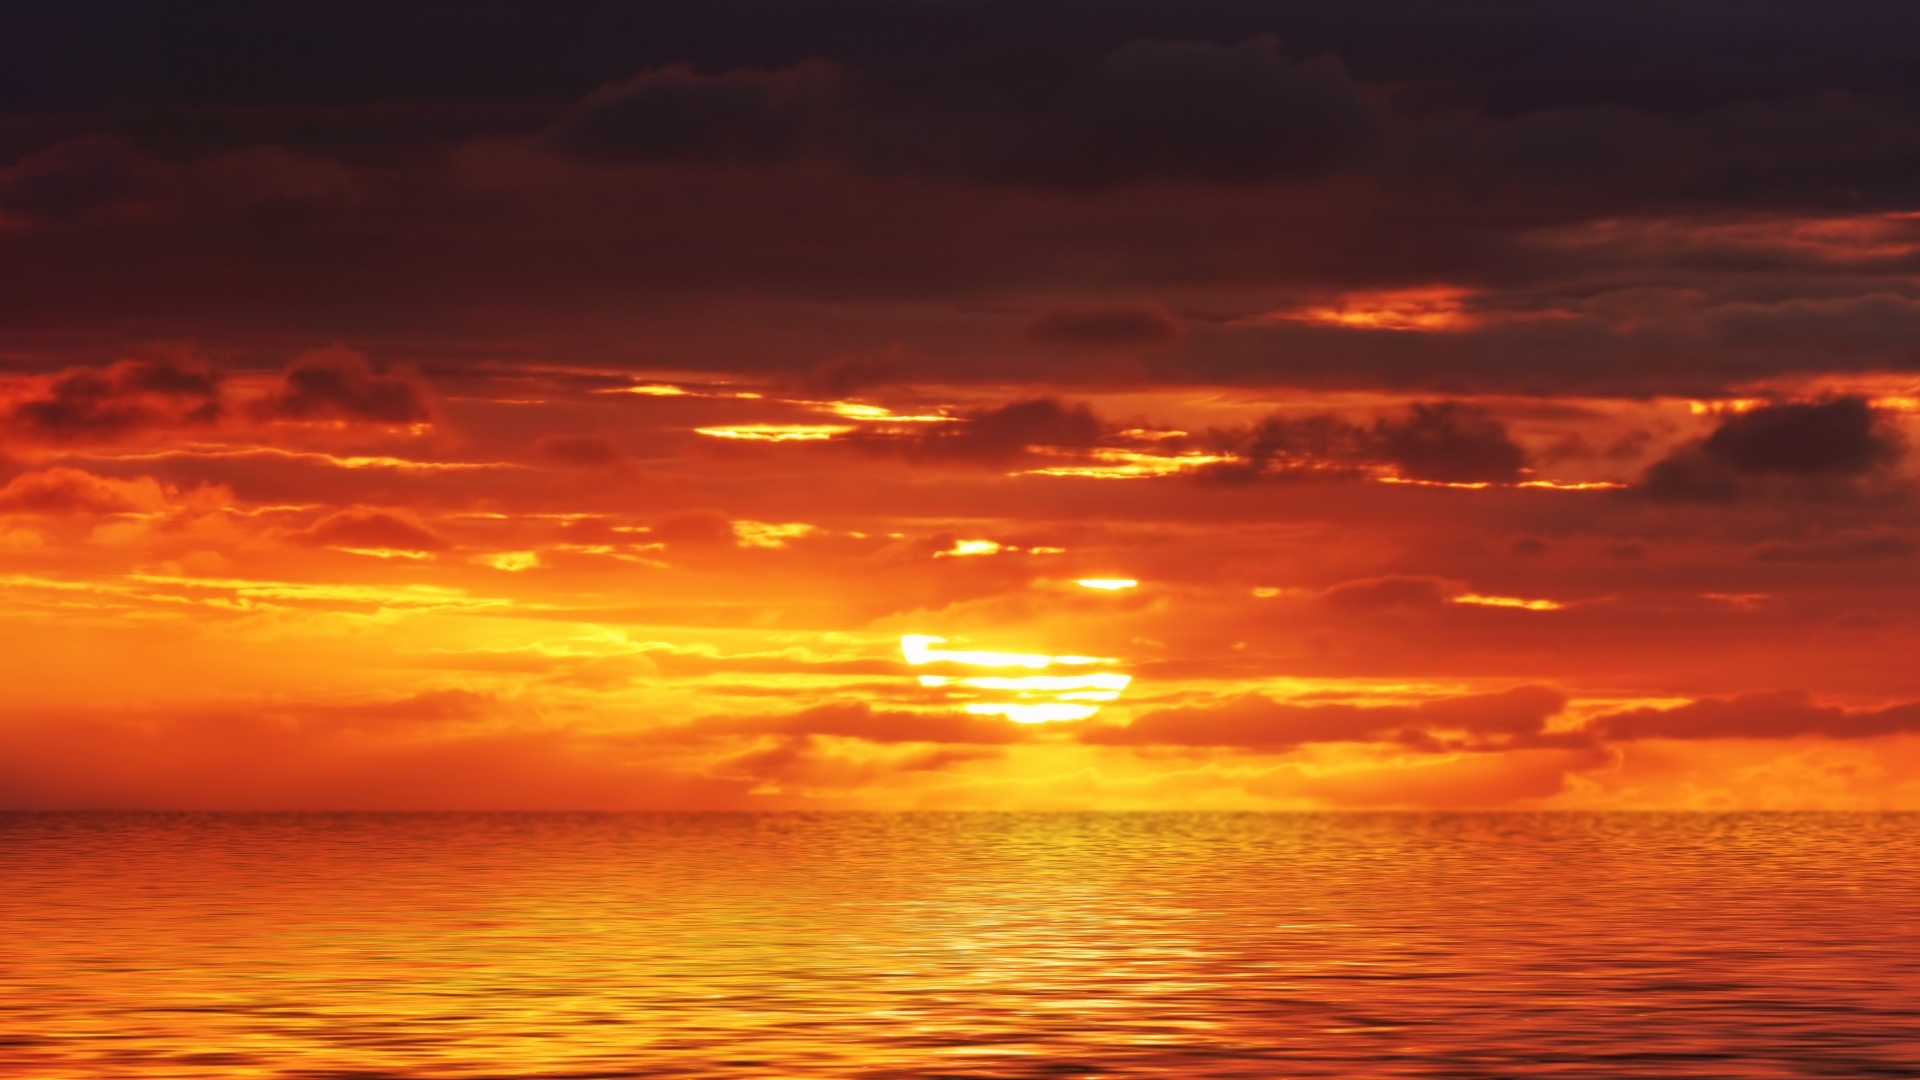 Download Orange Sunset 30005 1920x1080 Px High Resolution